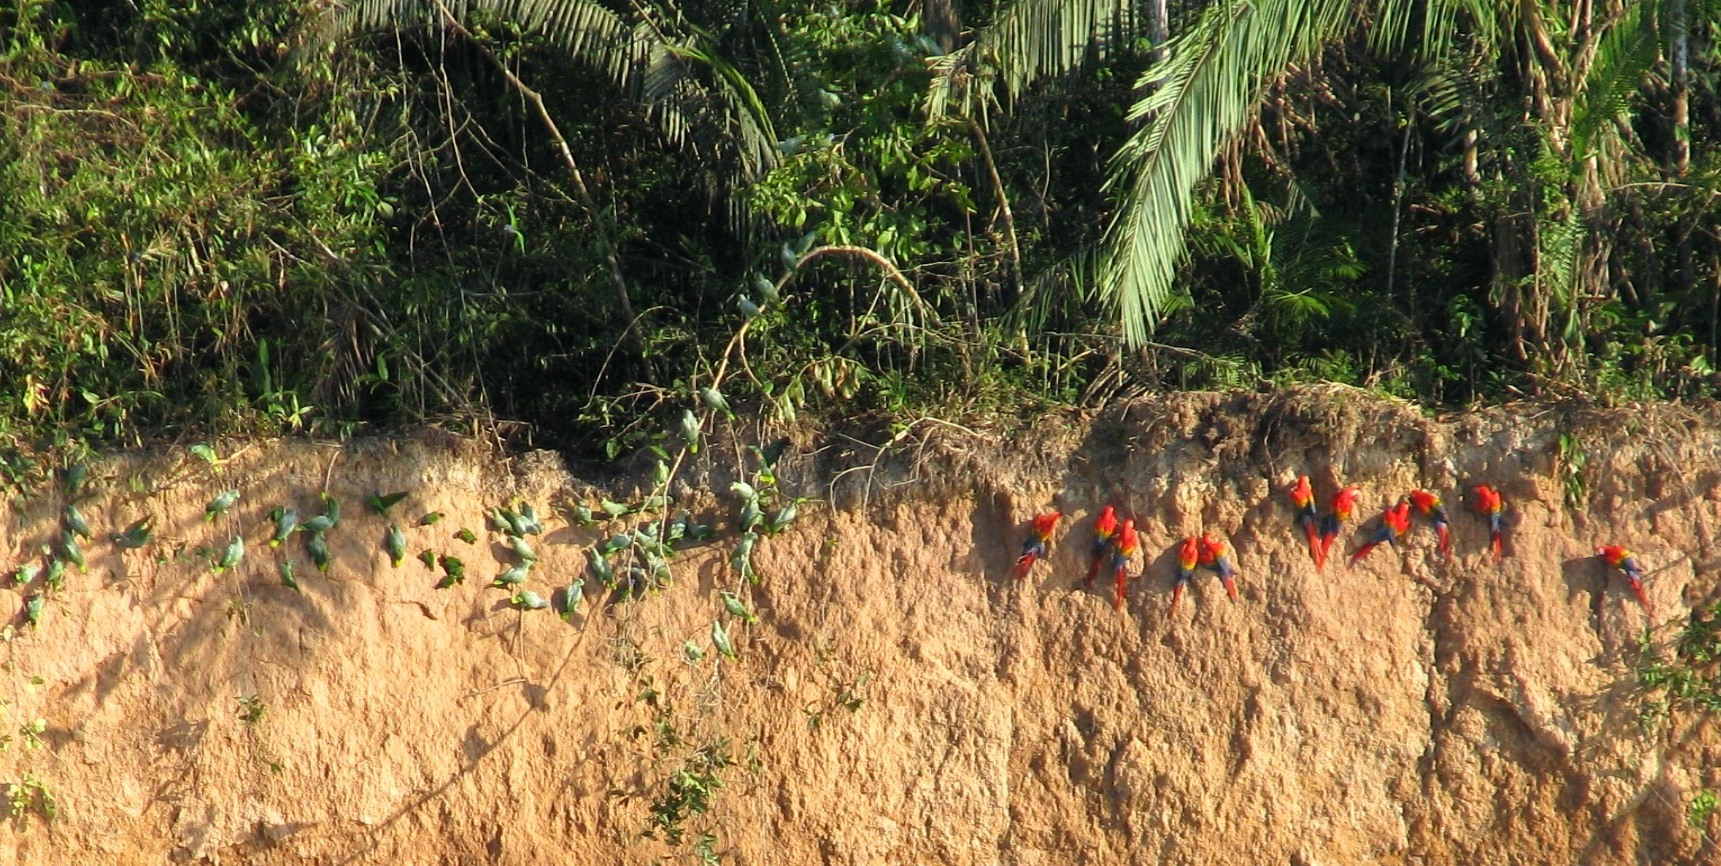 Parrots and scarlet macaws eat the seeds of palms and canopy trees. Here they eat minerals from the river bank clay that provides salt and may help them digest the seeds.